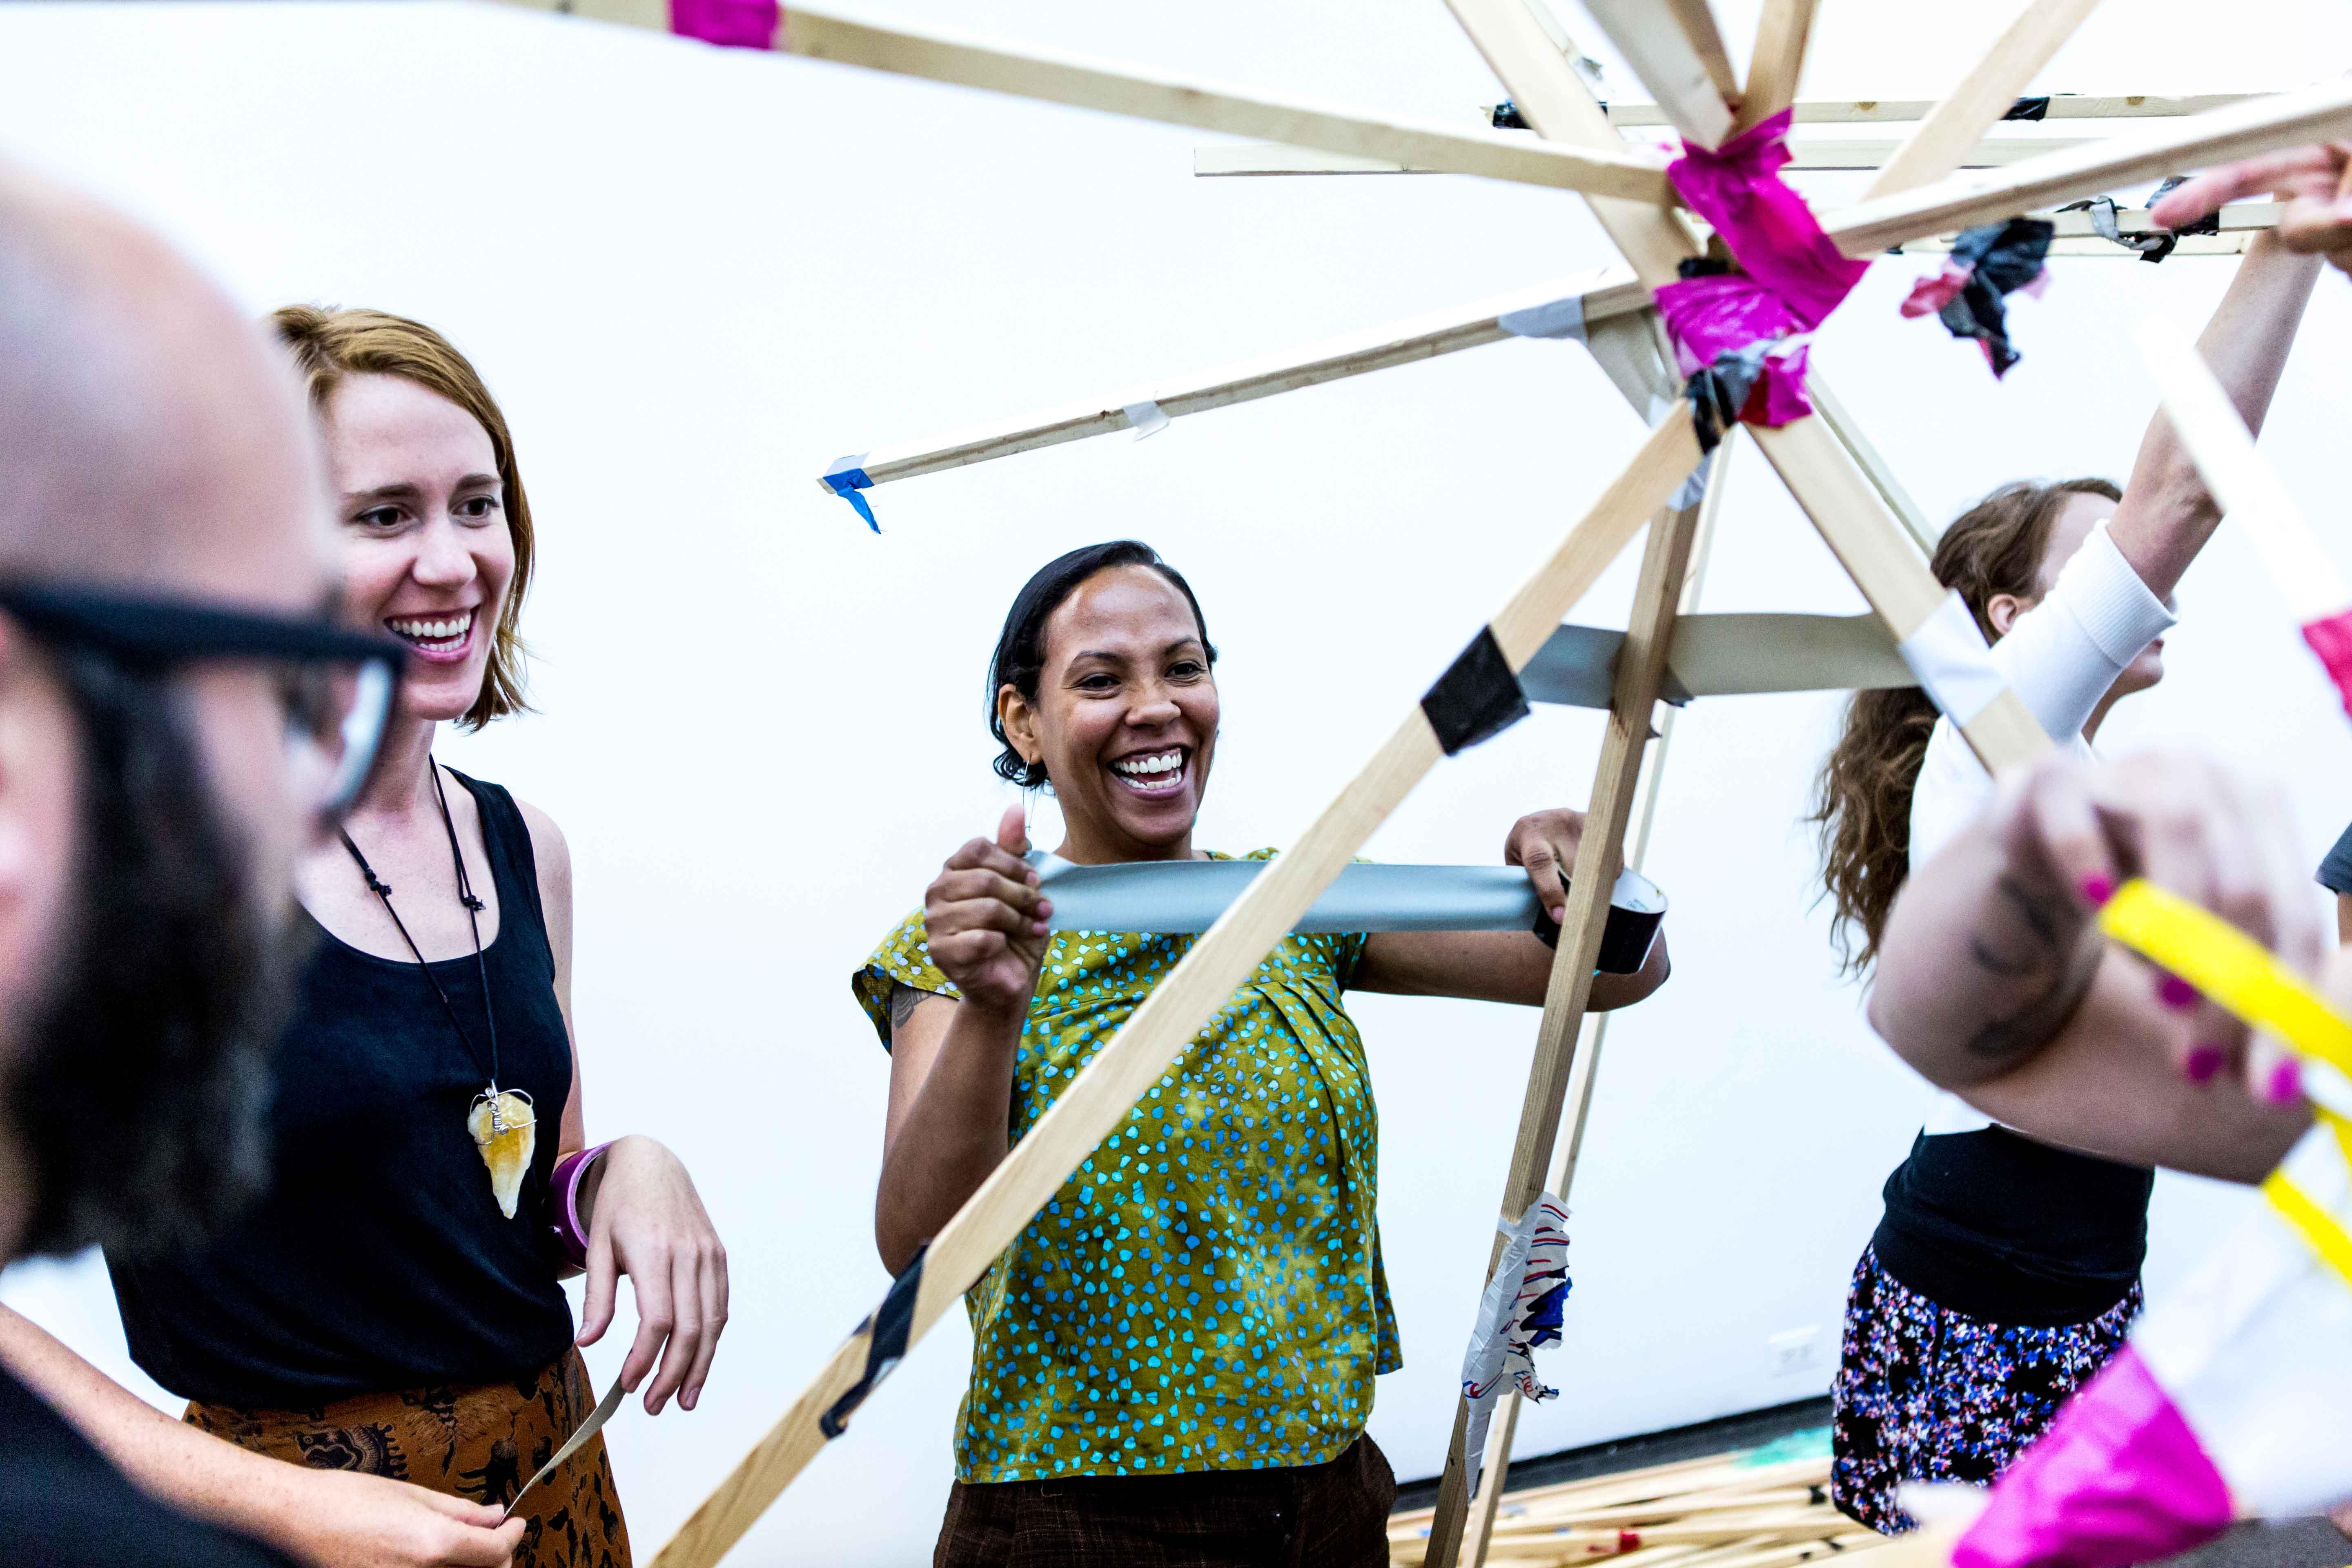 People making a structure with tape and long beams of wood